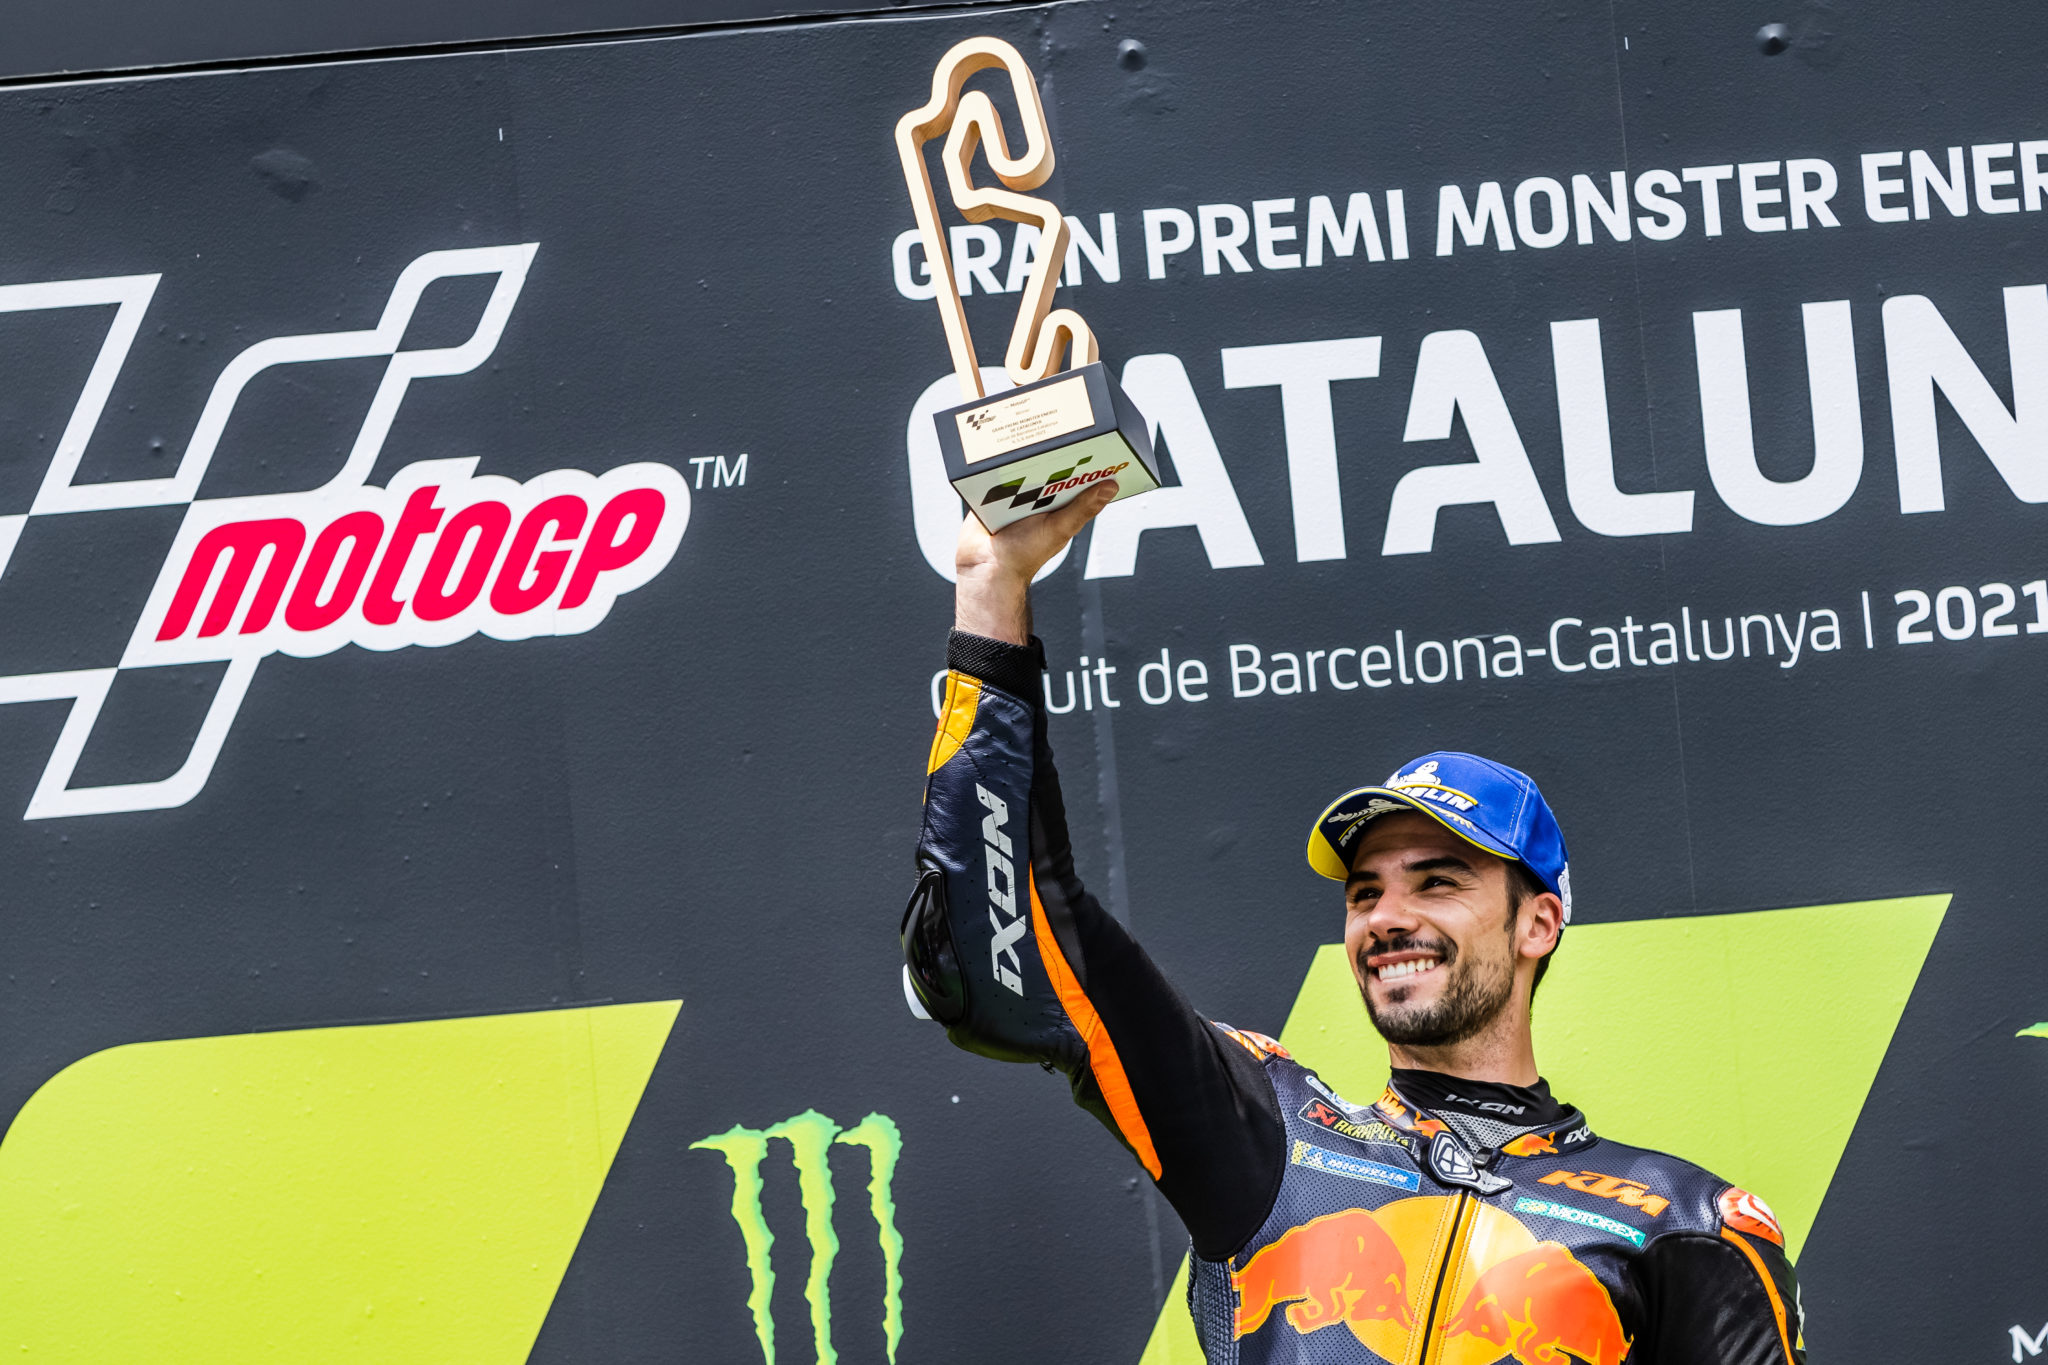 Miguel Oliveira scores his first victory in the Catalan GP.